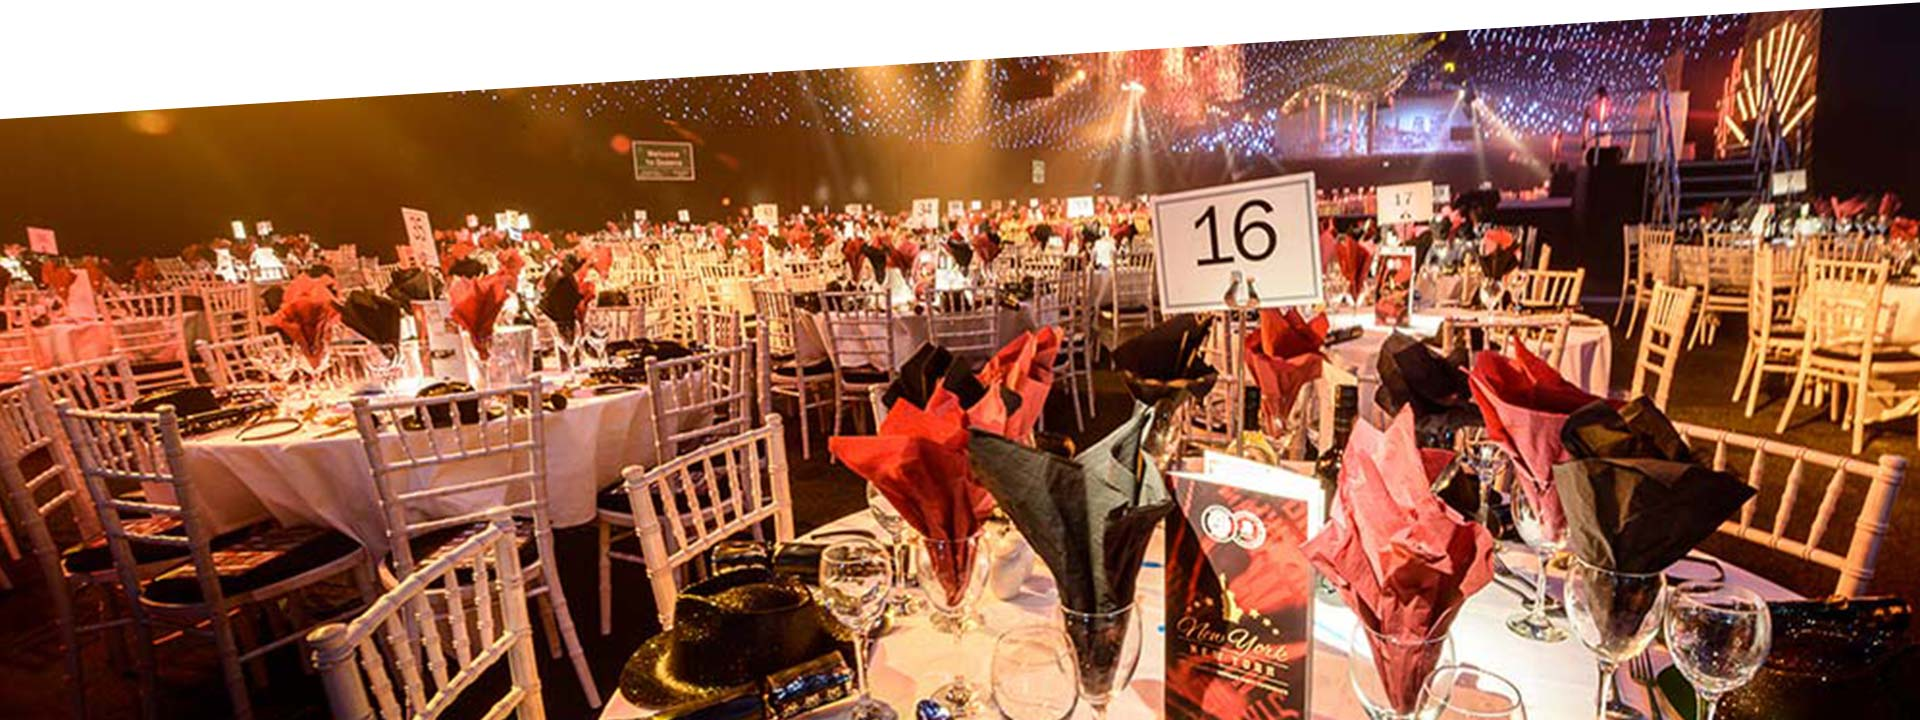 Liverpool Aintree Racecourse Christmas Party